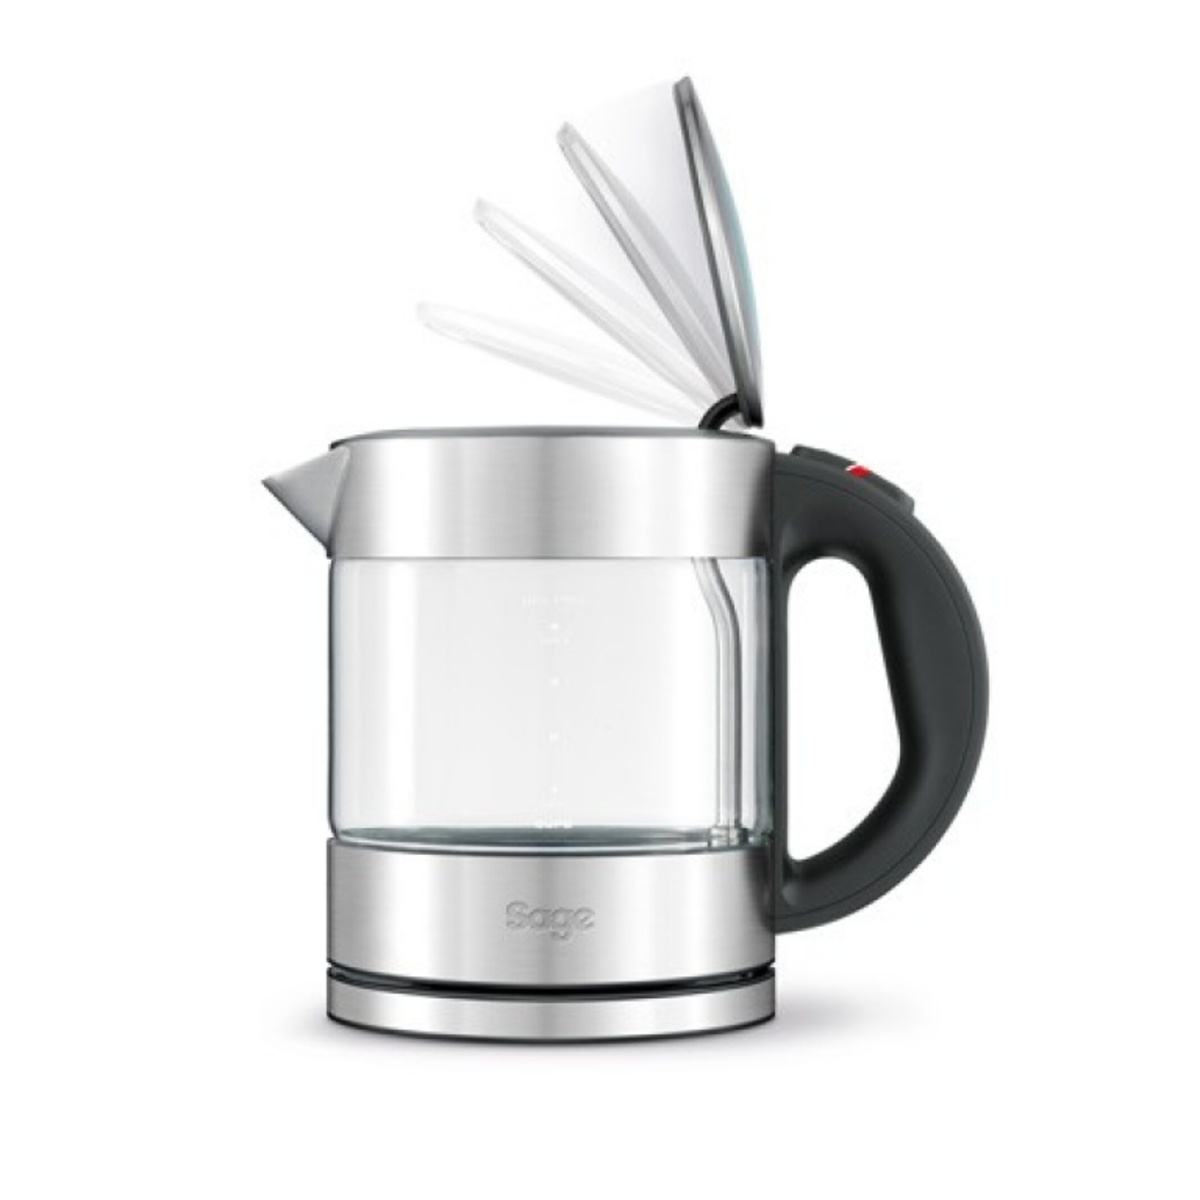 Image of Sage BKE395UK The Compact Pure 1.0L Kettle